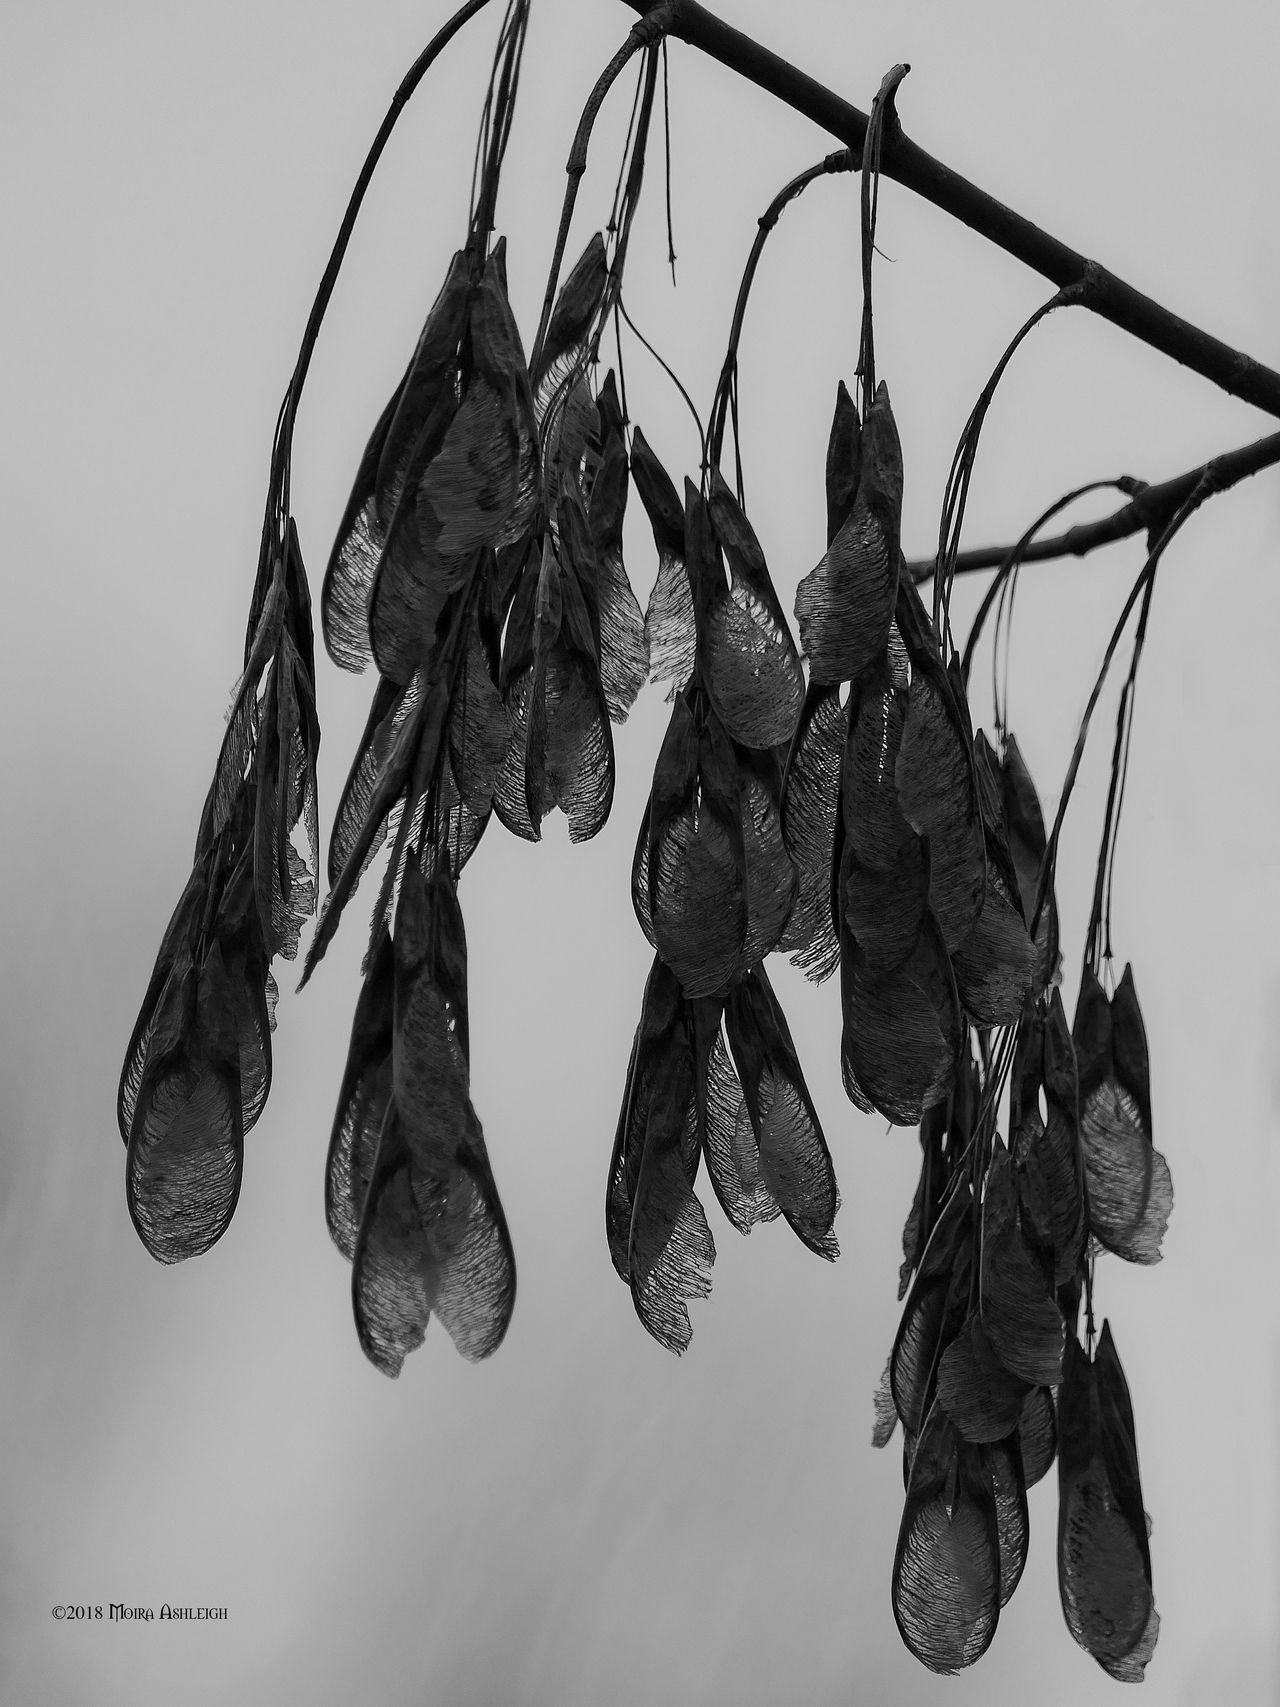 Seeds in darkness by Mogrianne